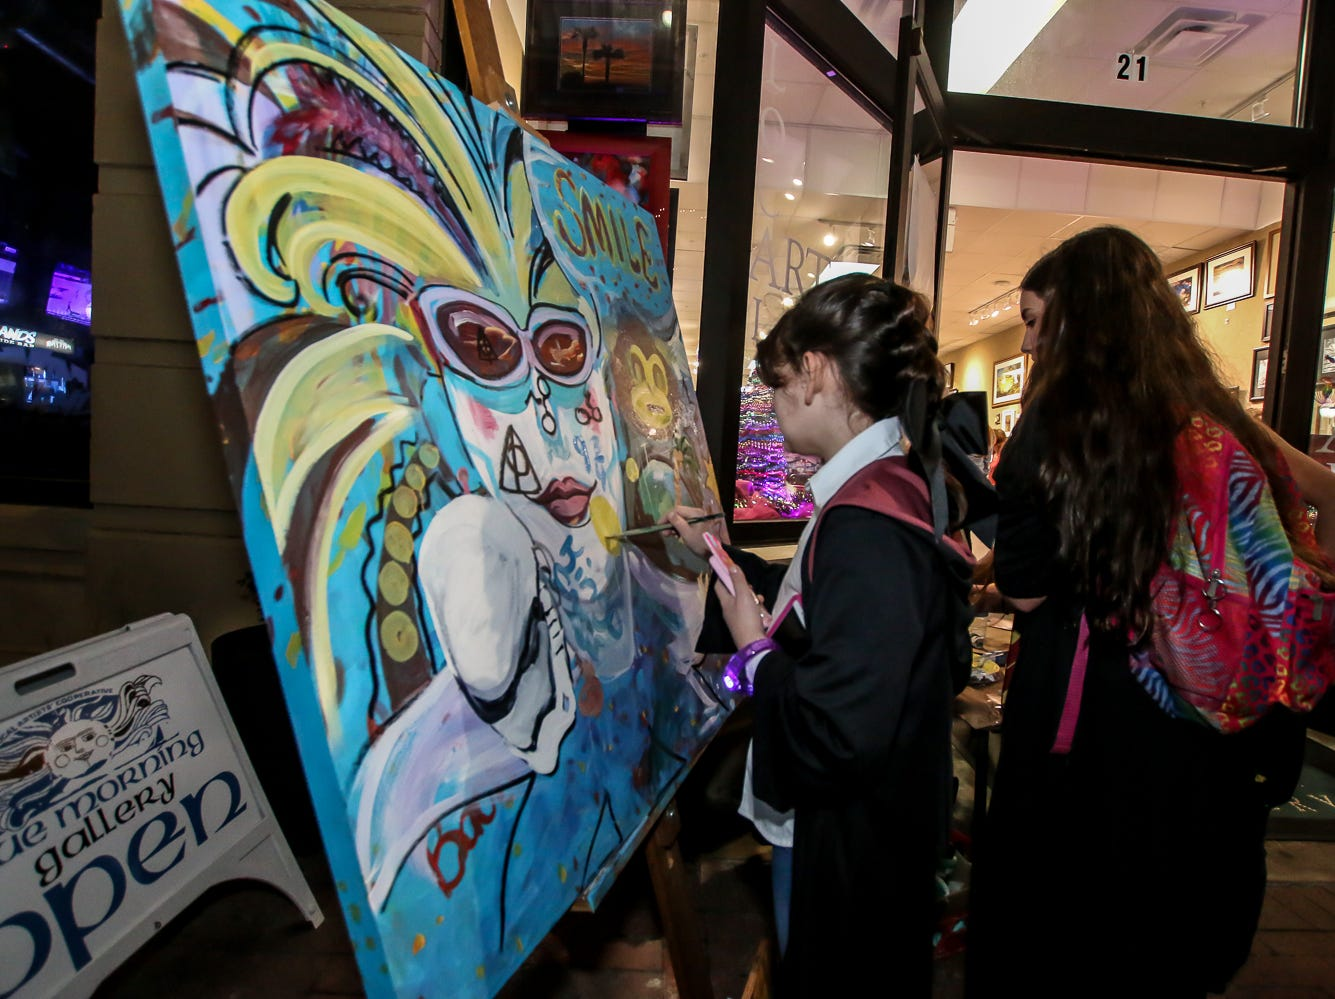 Claire Kennington, 10, paints outside of Blue Morning Gallery during Gallery Night on Friday, February 22, 2019.